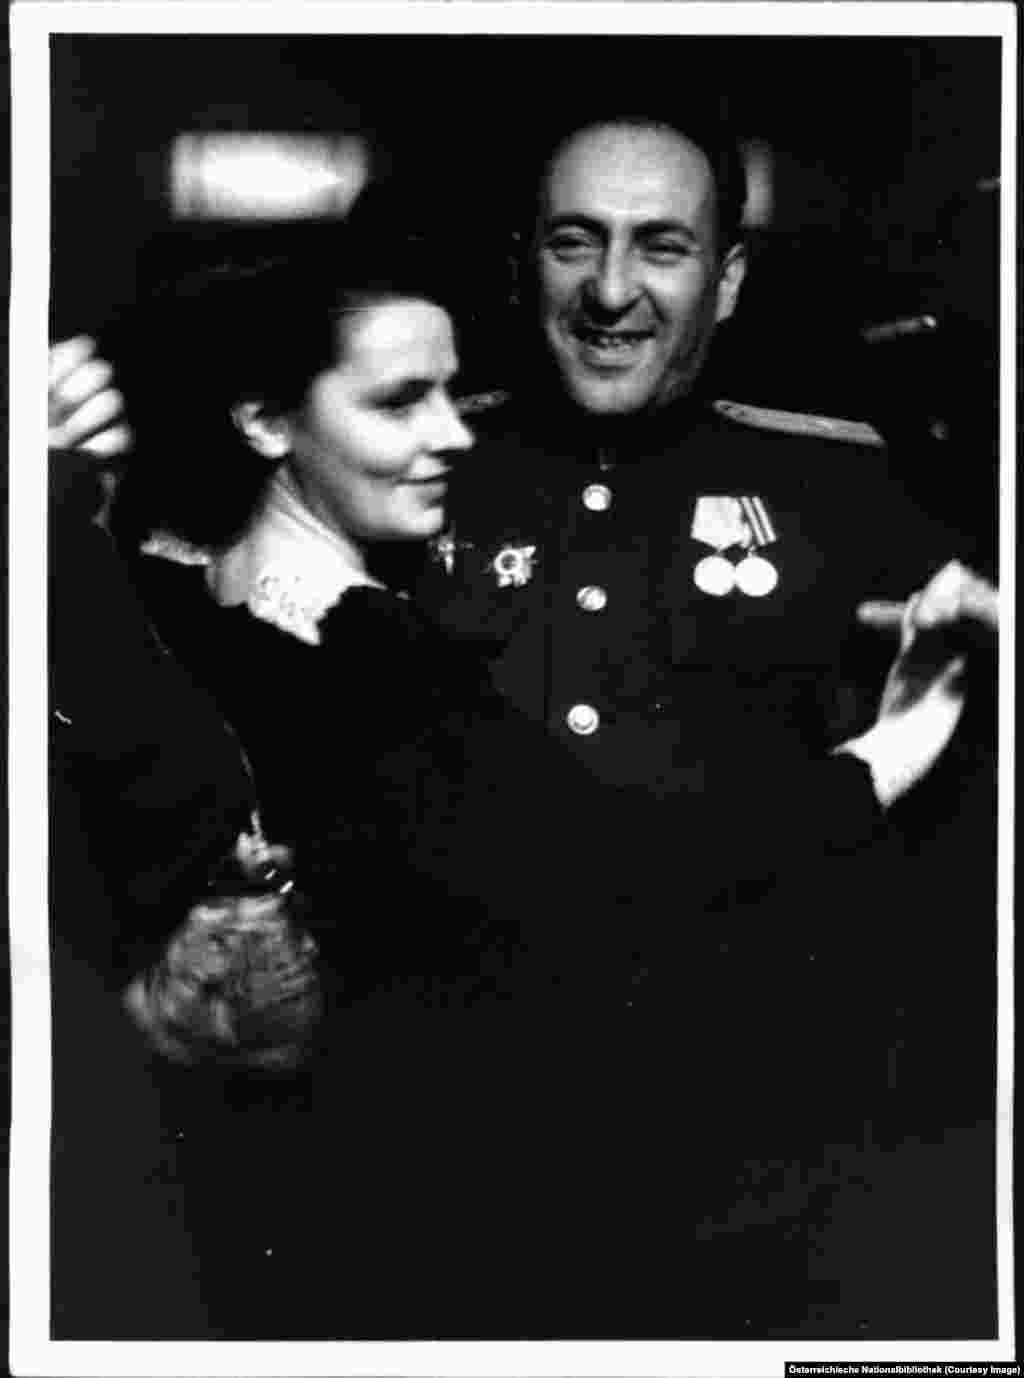 A Soviet information officer waltzing with a young woman.